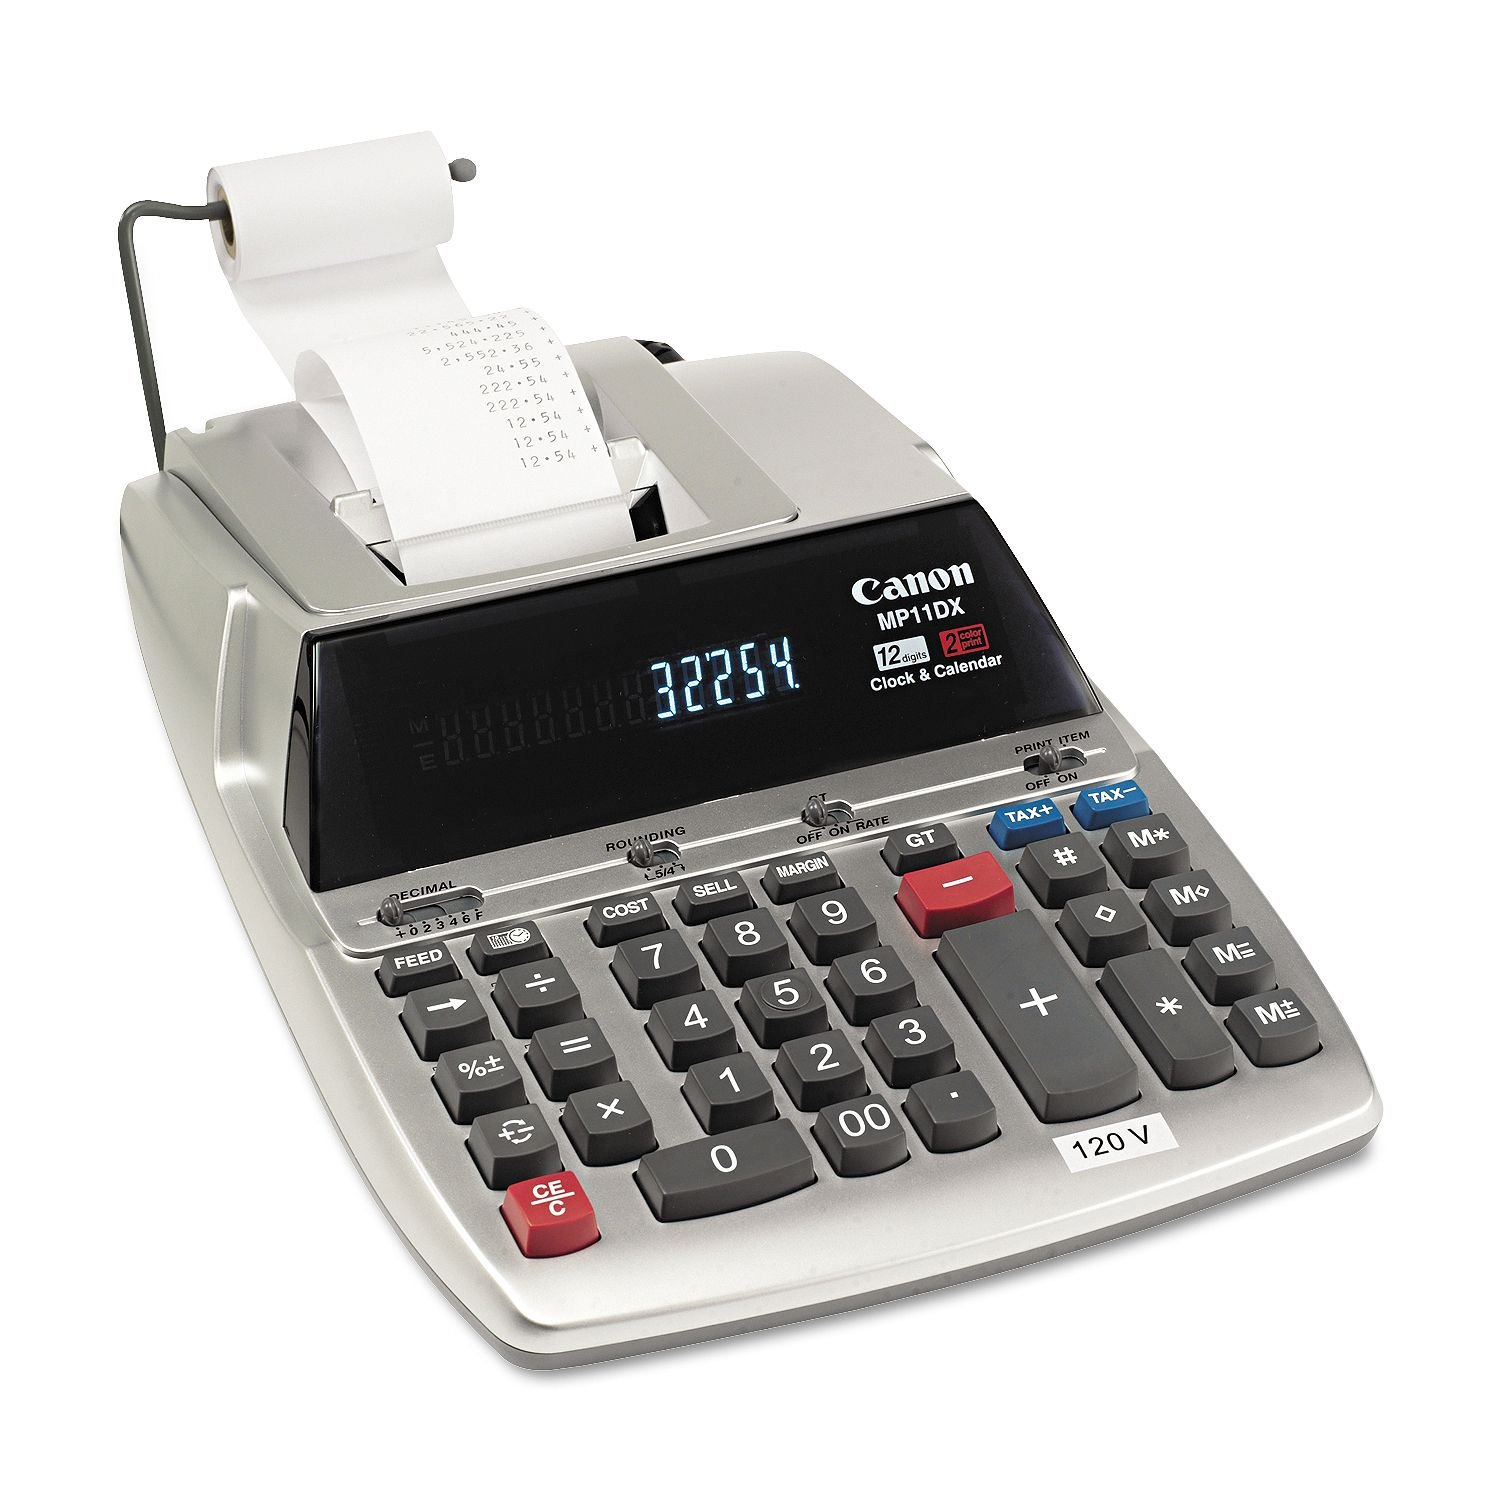 Canon Mp11dx Calculator A Users Manual Various Owner Manual Guide